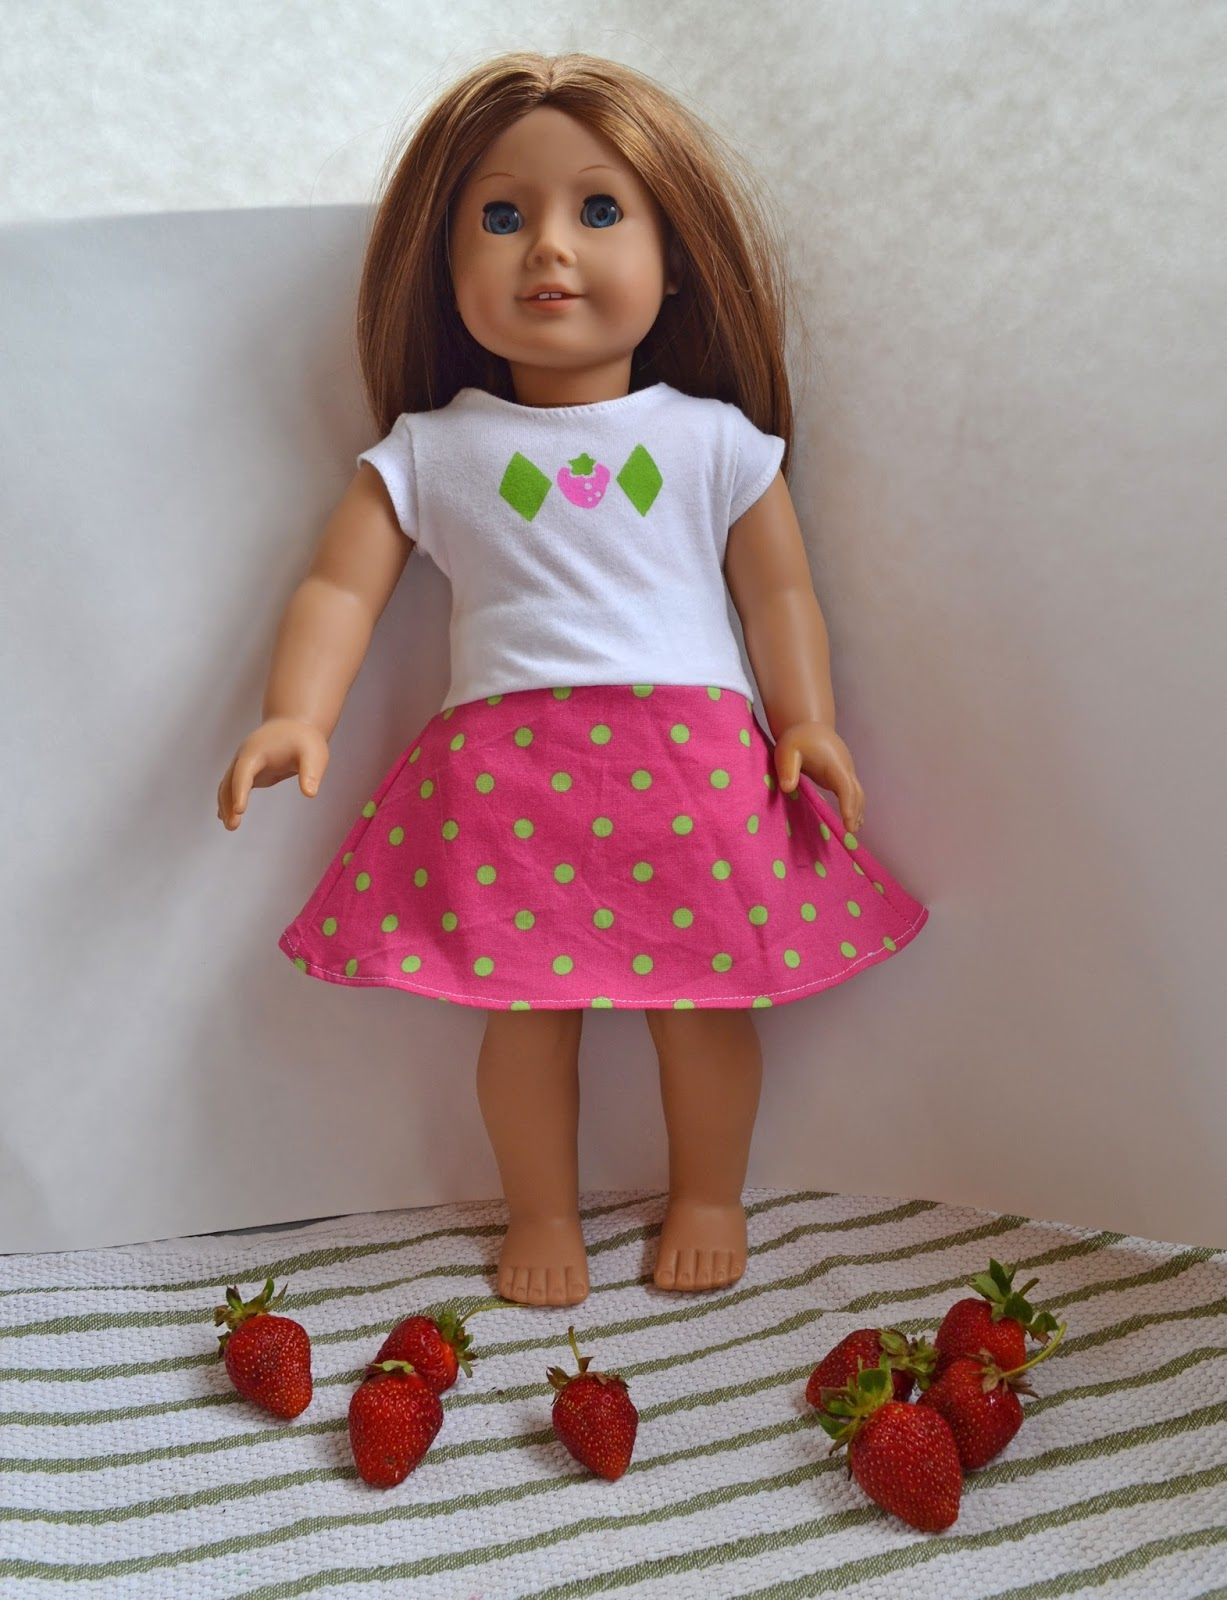 American Girl Doll Strawberry Shortcake Dress